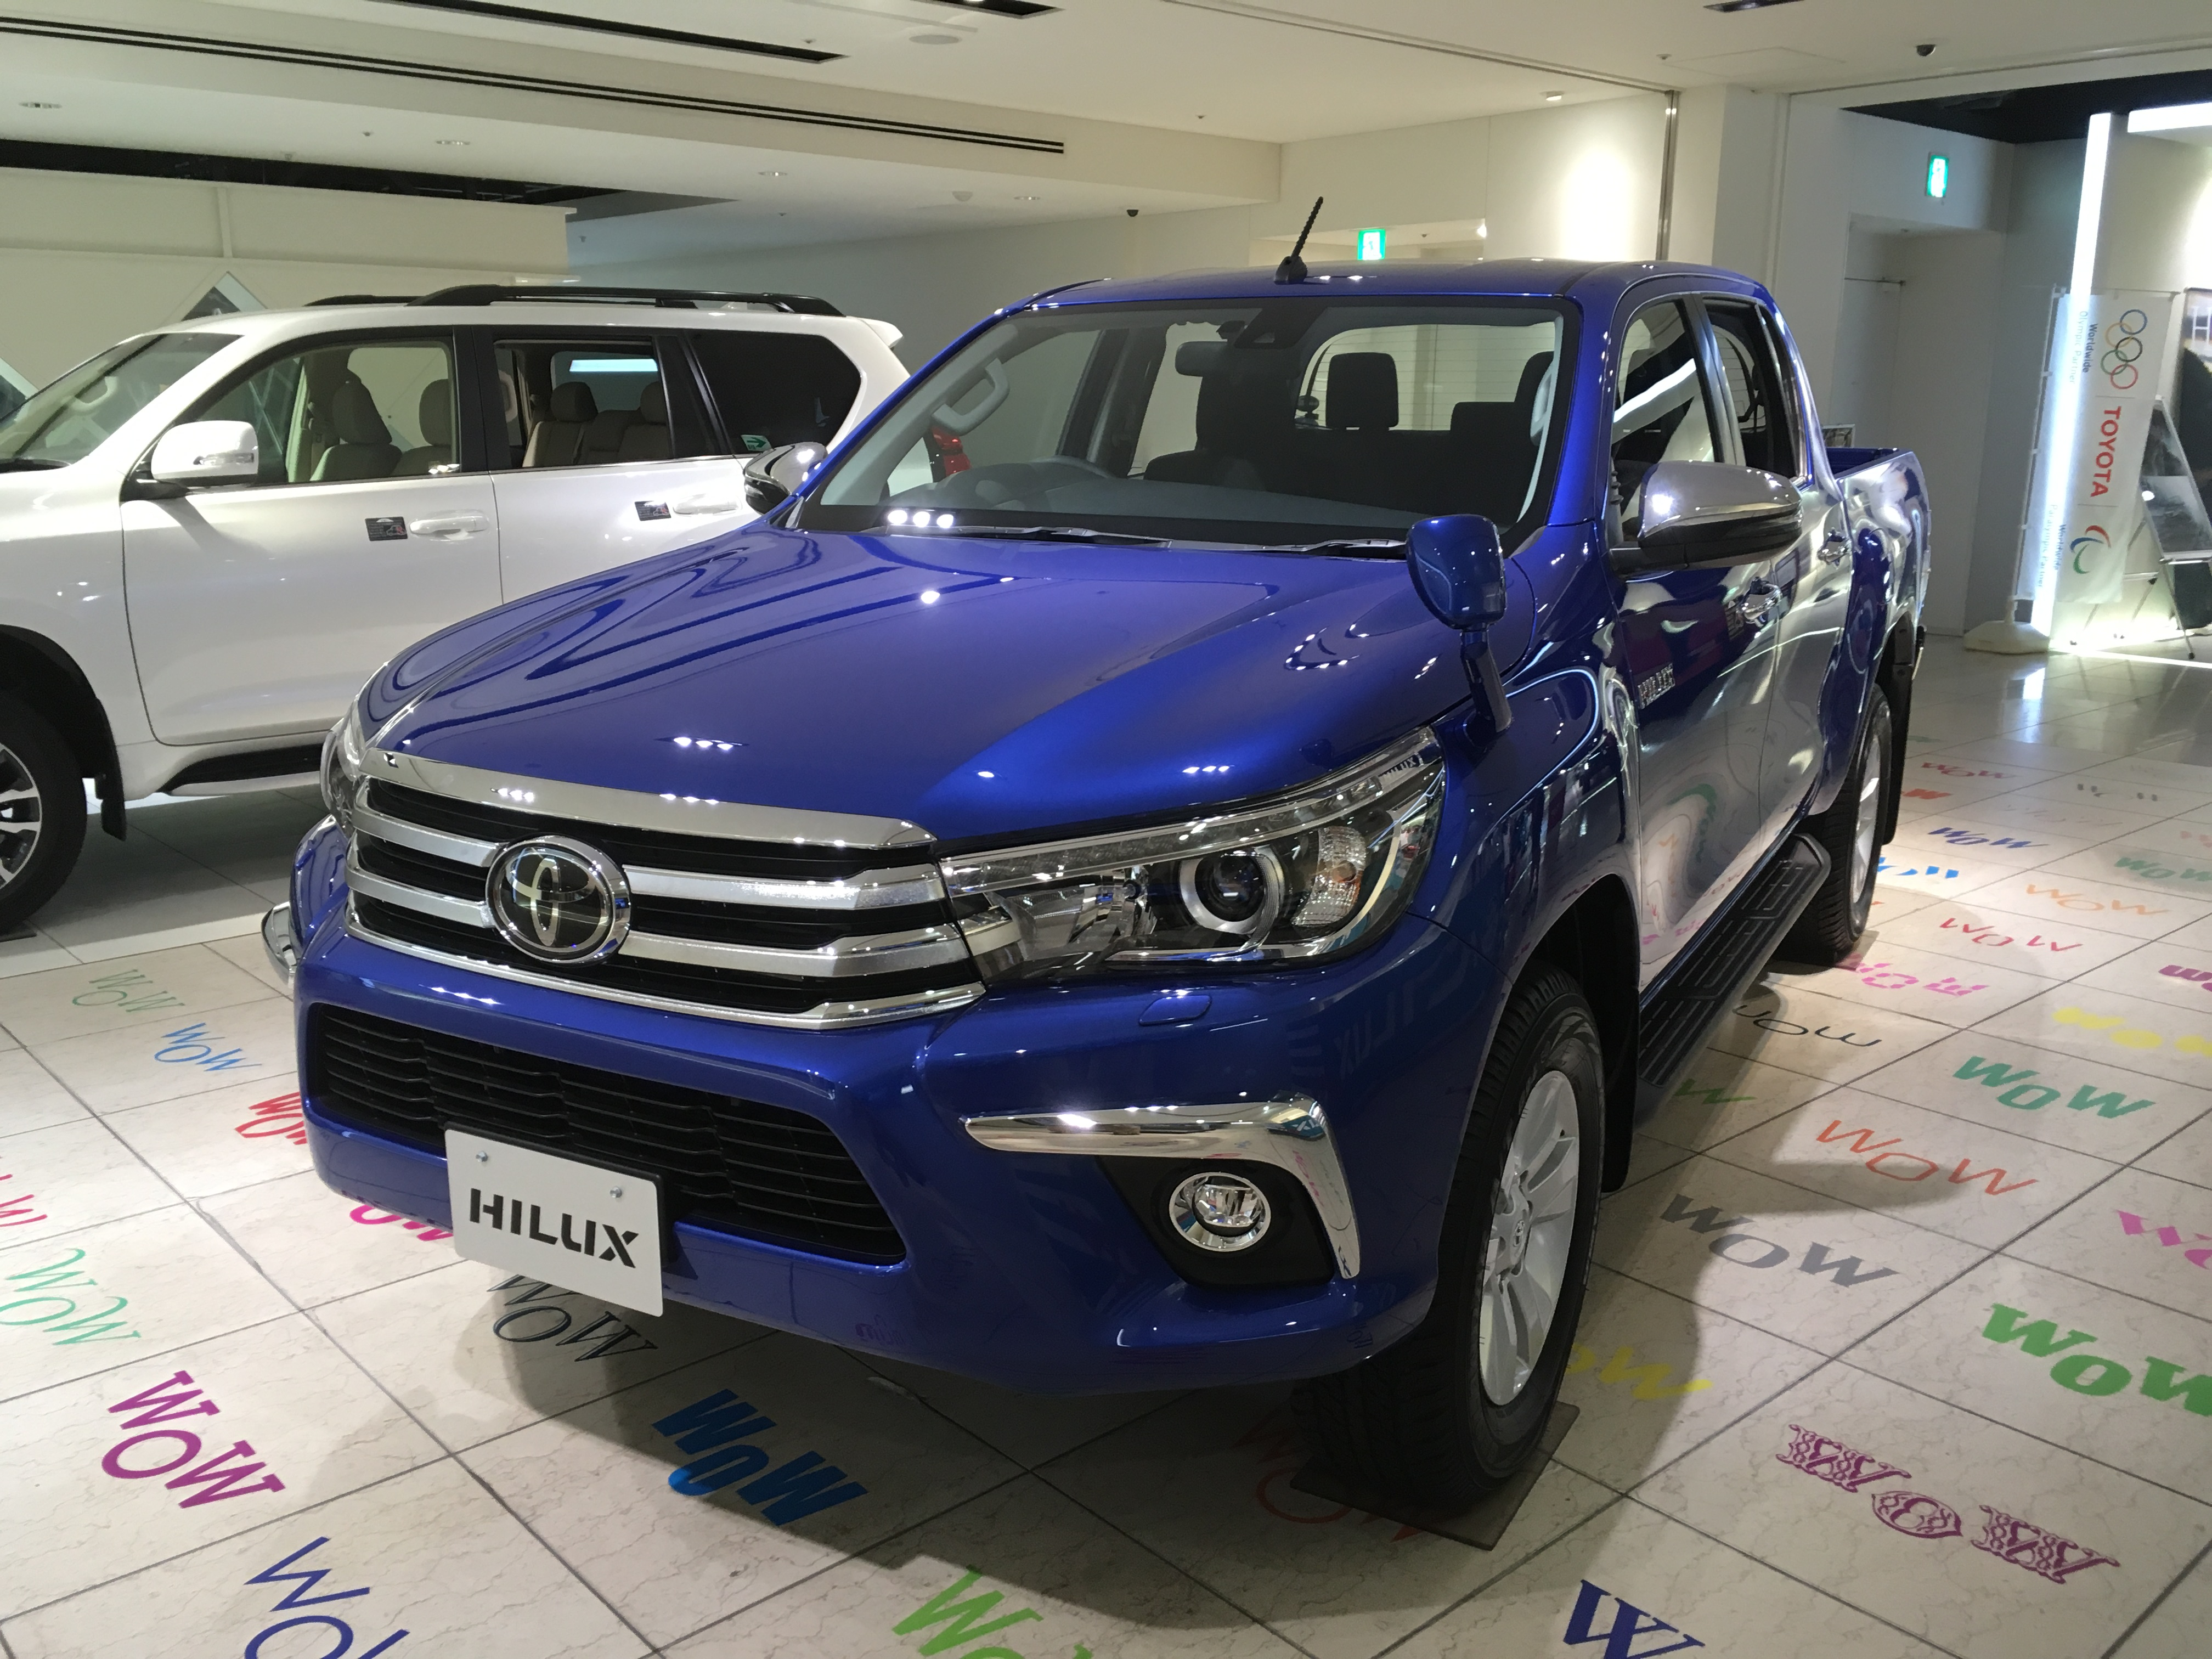 Toyota_hilux_2017_japan